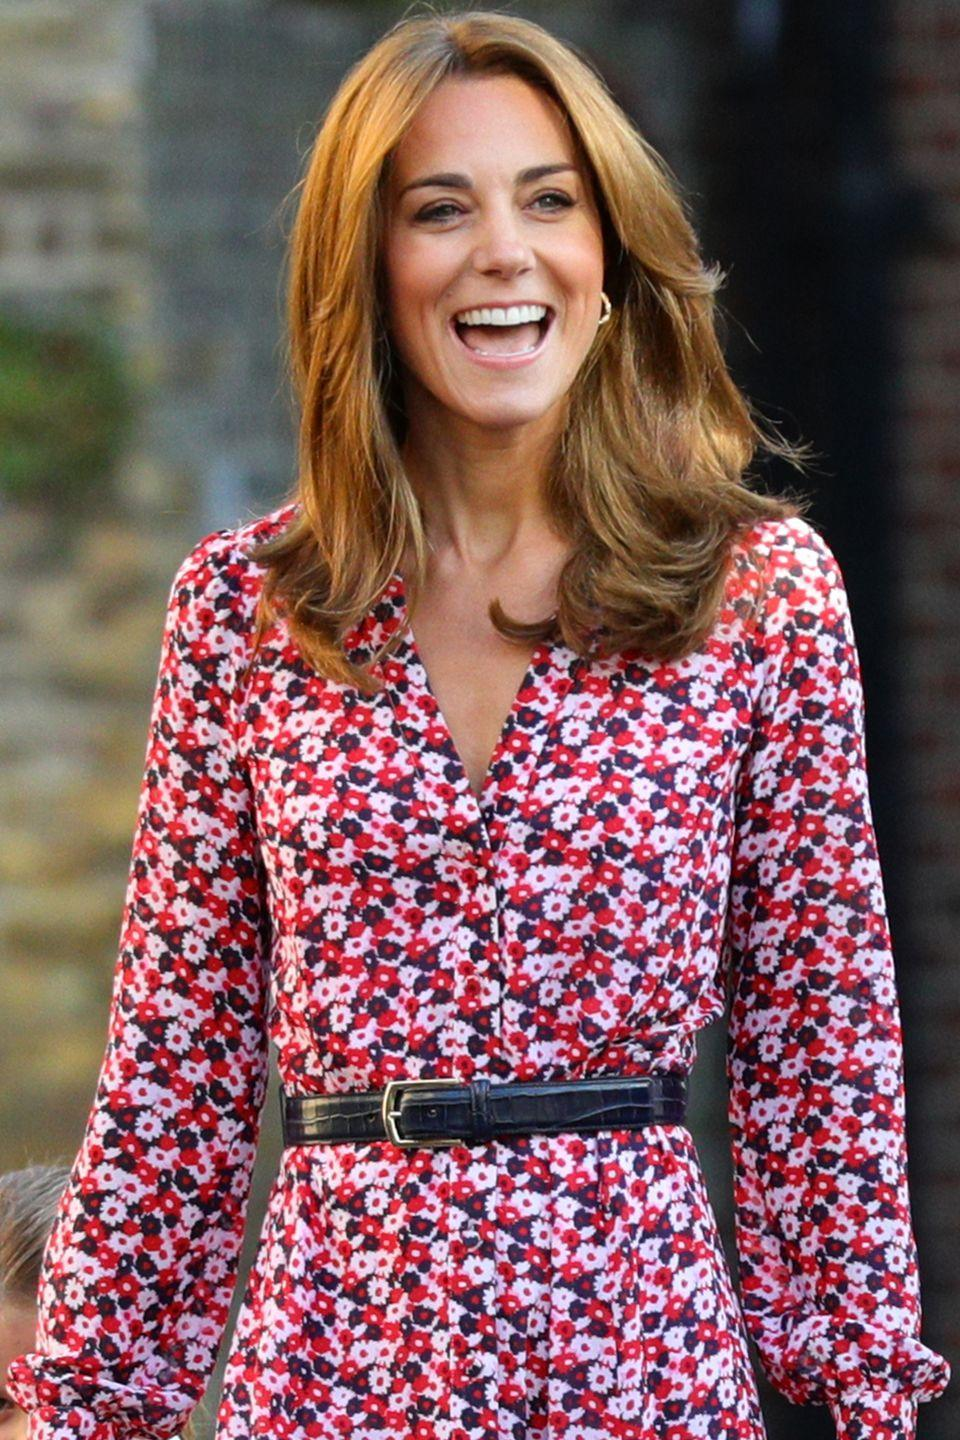 "<p>Kate Middleton stuns in a <a href=""https://www.harpersbazaar.com/celebrity/latest/a28917131/kate-middleton-prince-george-princess-charlotte-first-day/"" rel=""nofollow noopener"" target=""_blank"" data-ylk=""slk:floral dress"" class=""link rapid-noclick-resp"">floral dress</a> by Michael Kors for the big day.</p>"